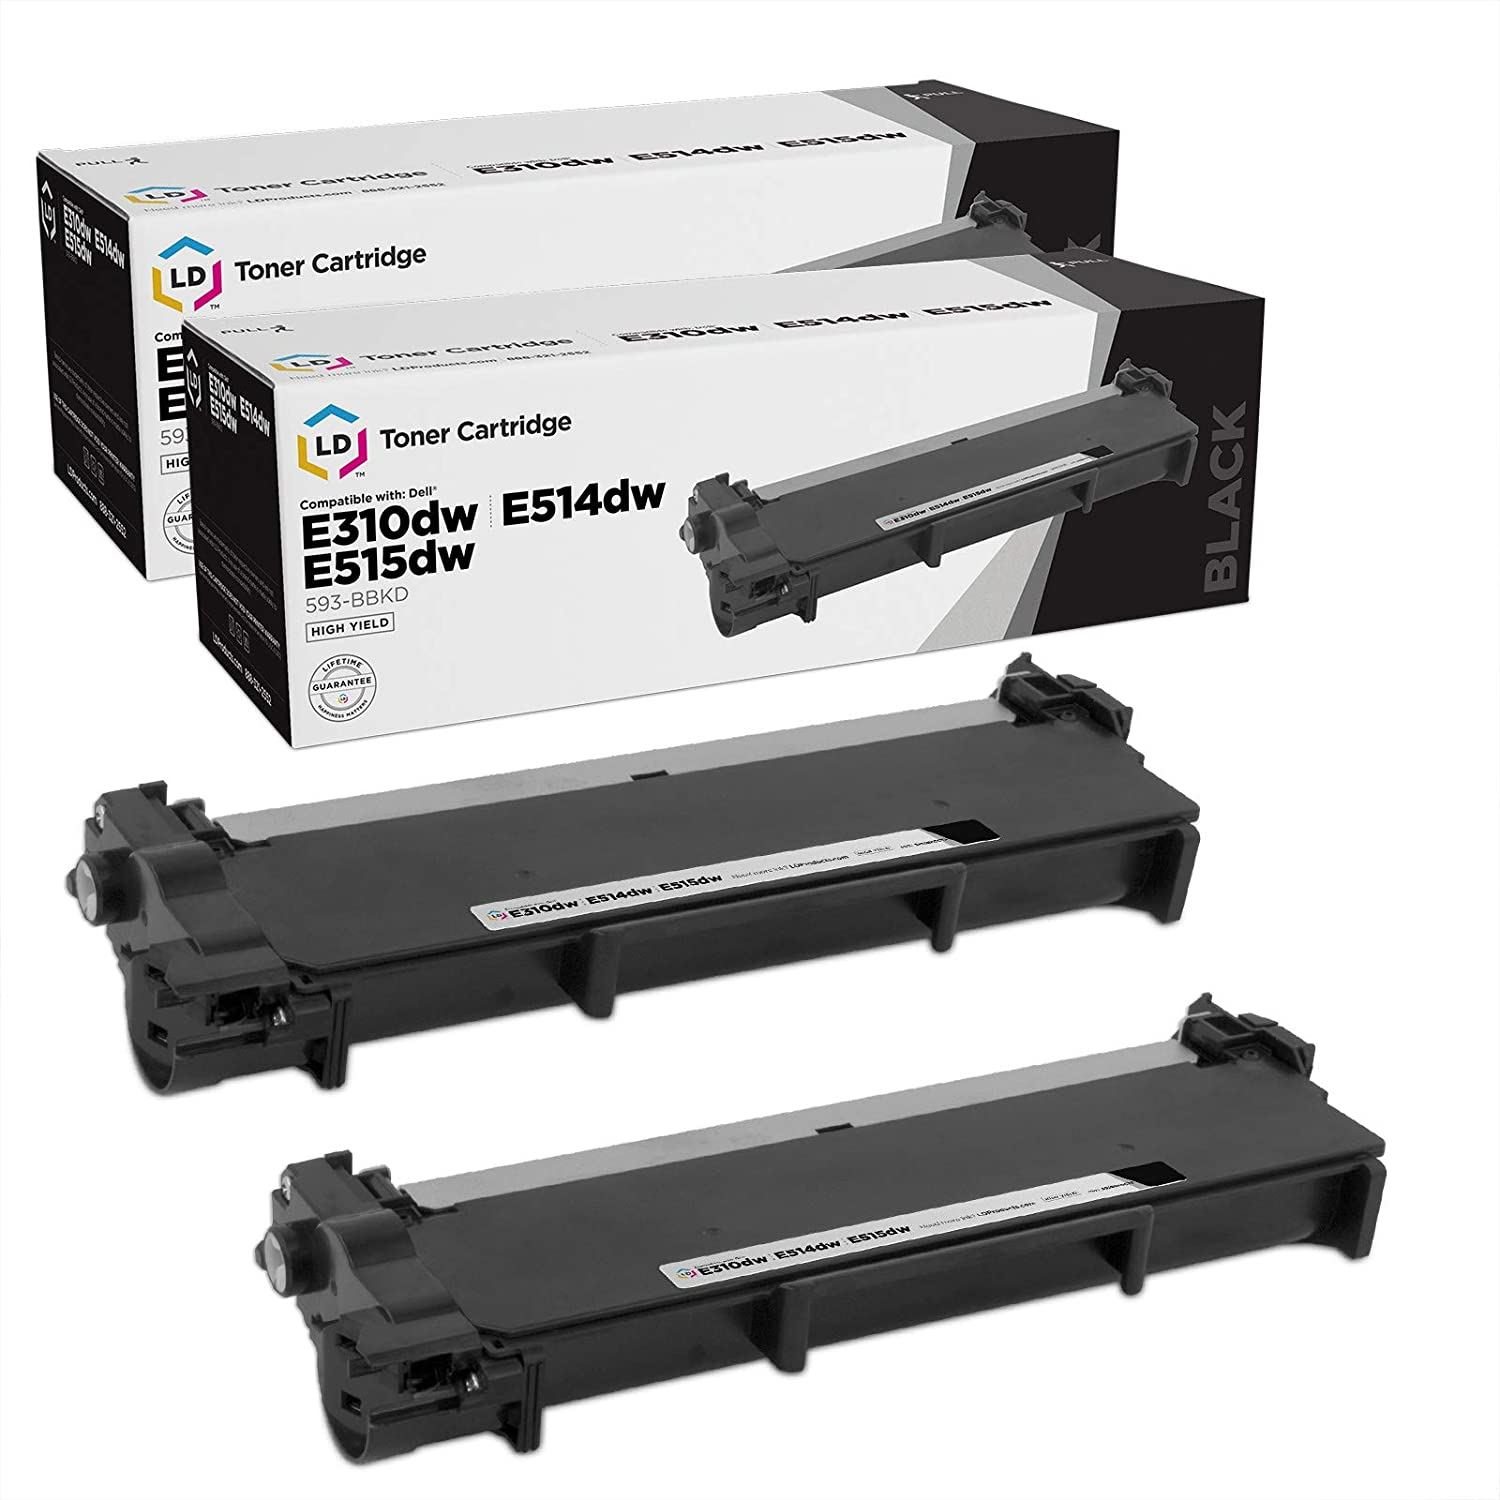 CNY Toner 3 Packs Compatible Dell 330-1194 Toner